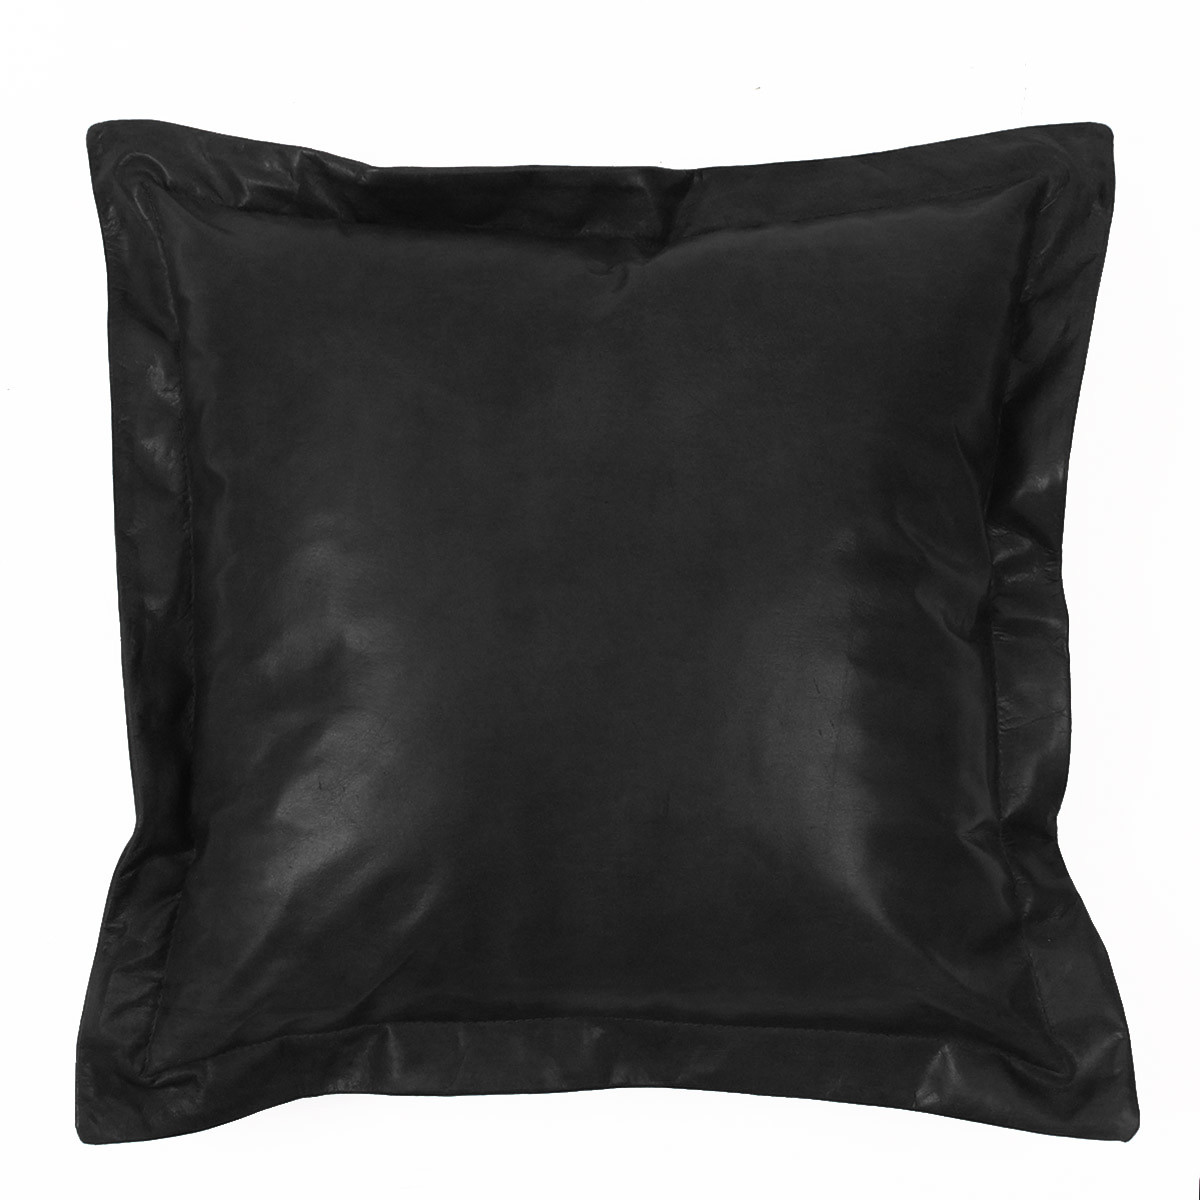 Tabac Pillow 16 x 16 inches Leather Black